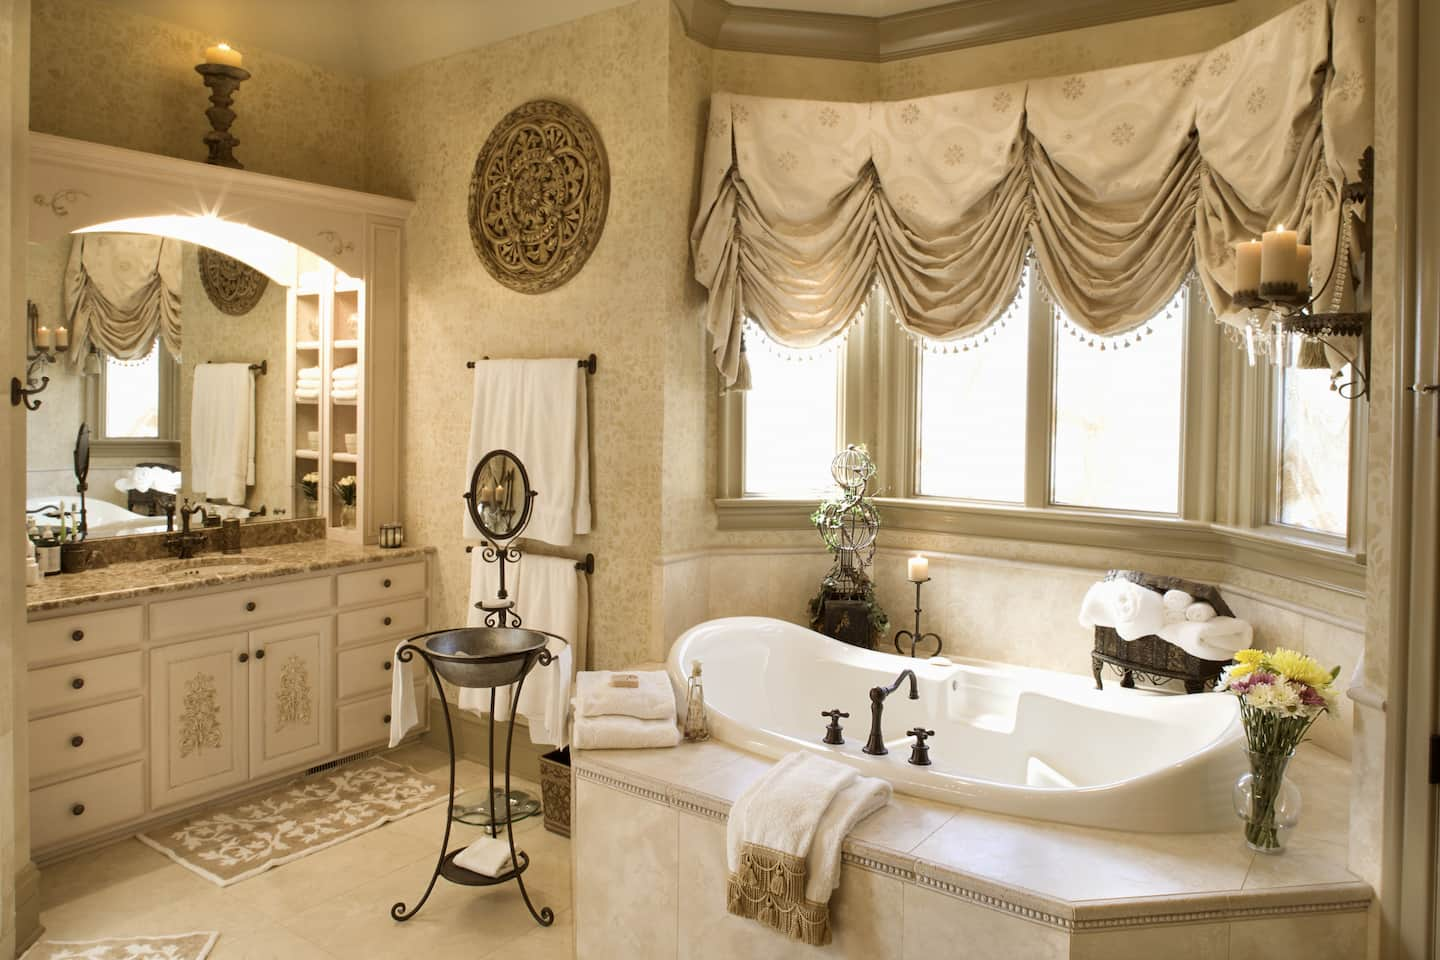 12 Sensational Bathroom Cabinet Design Ideas Angie S List